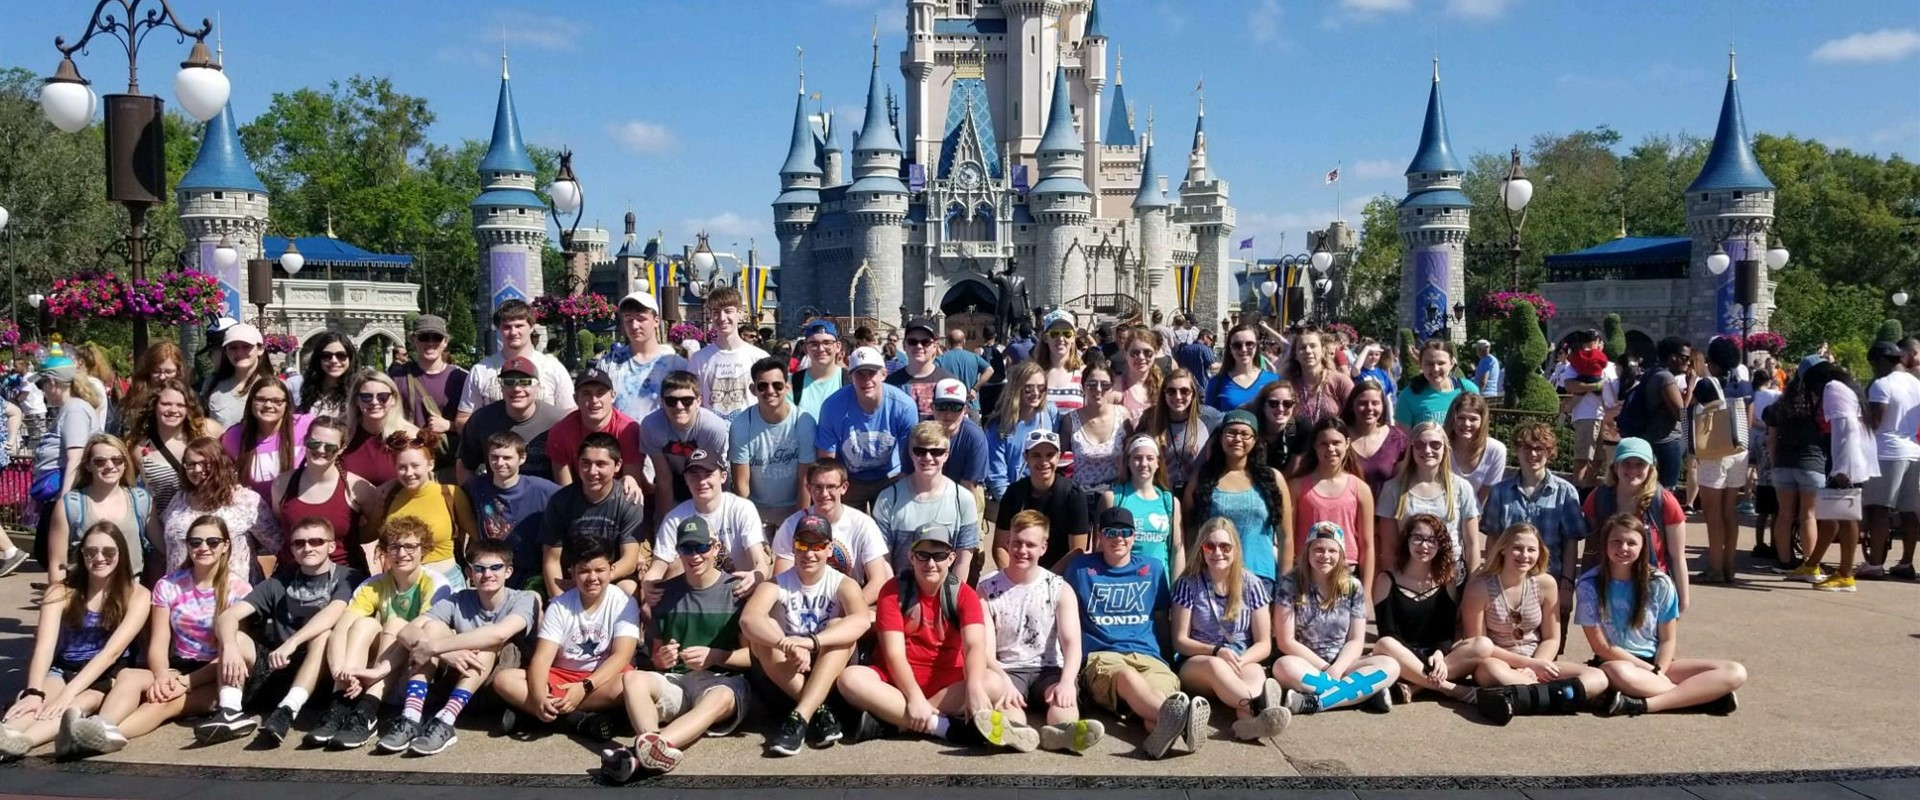 The Band & Choir students enjoying the day at the most magical place on earth! Florida trip 2018.